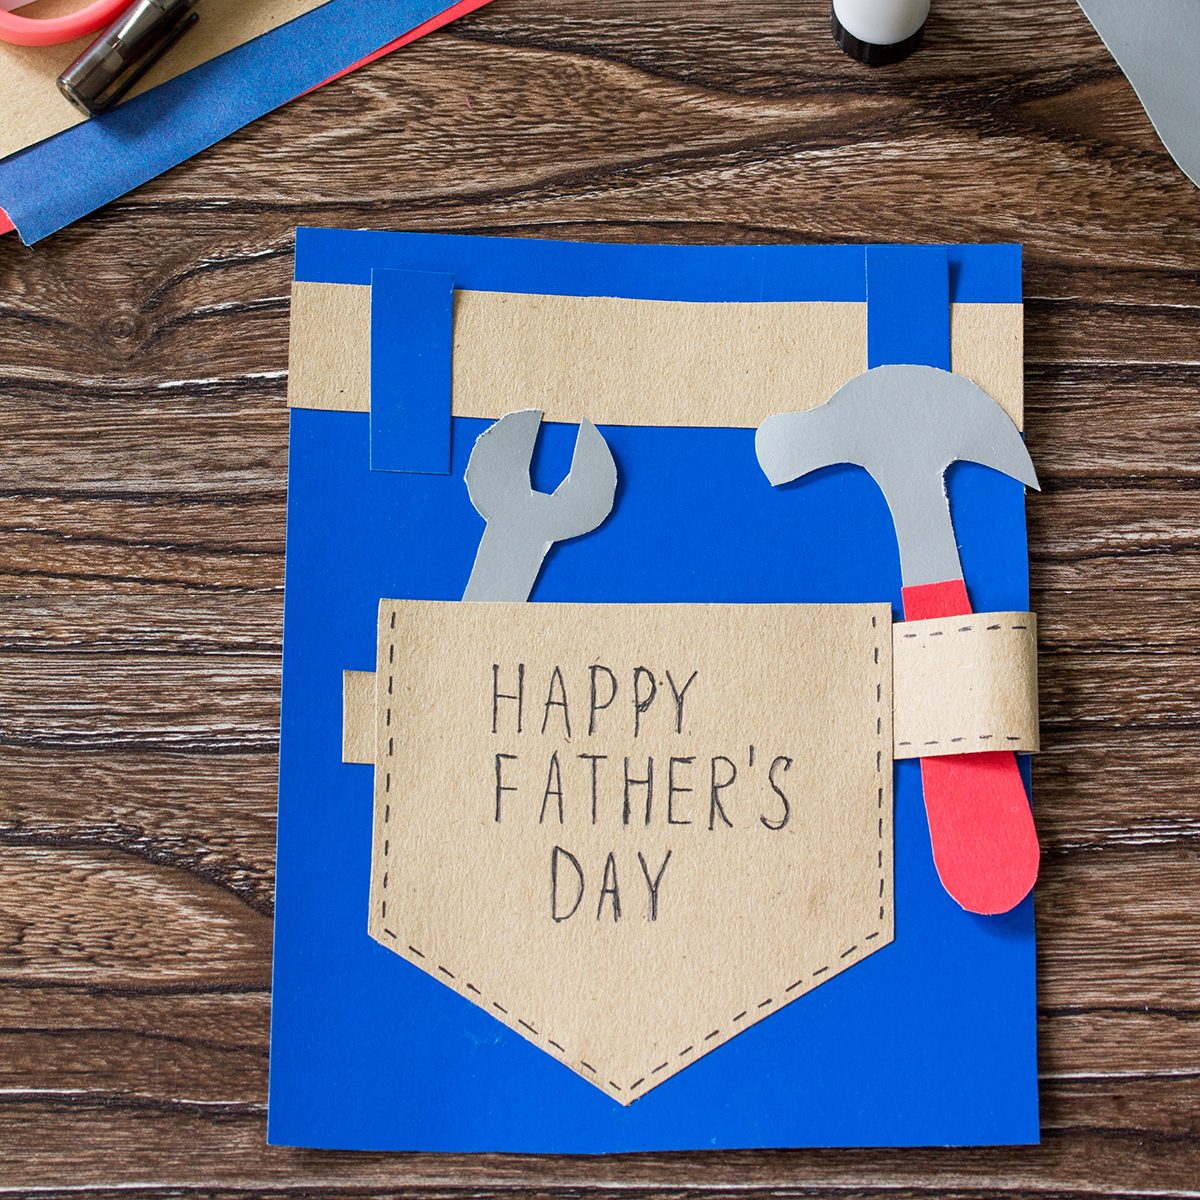 Greeting card with Happy fathers day on wooden table